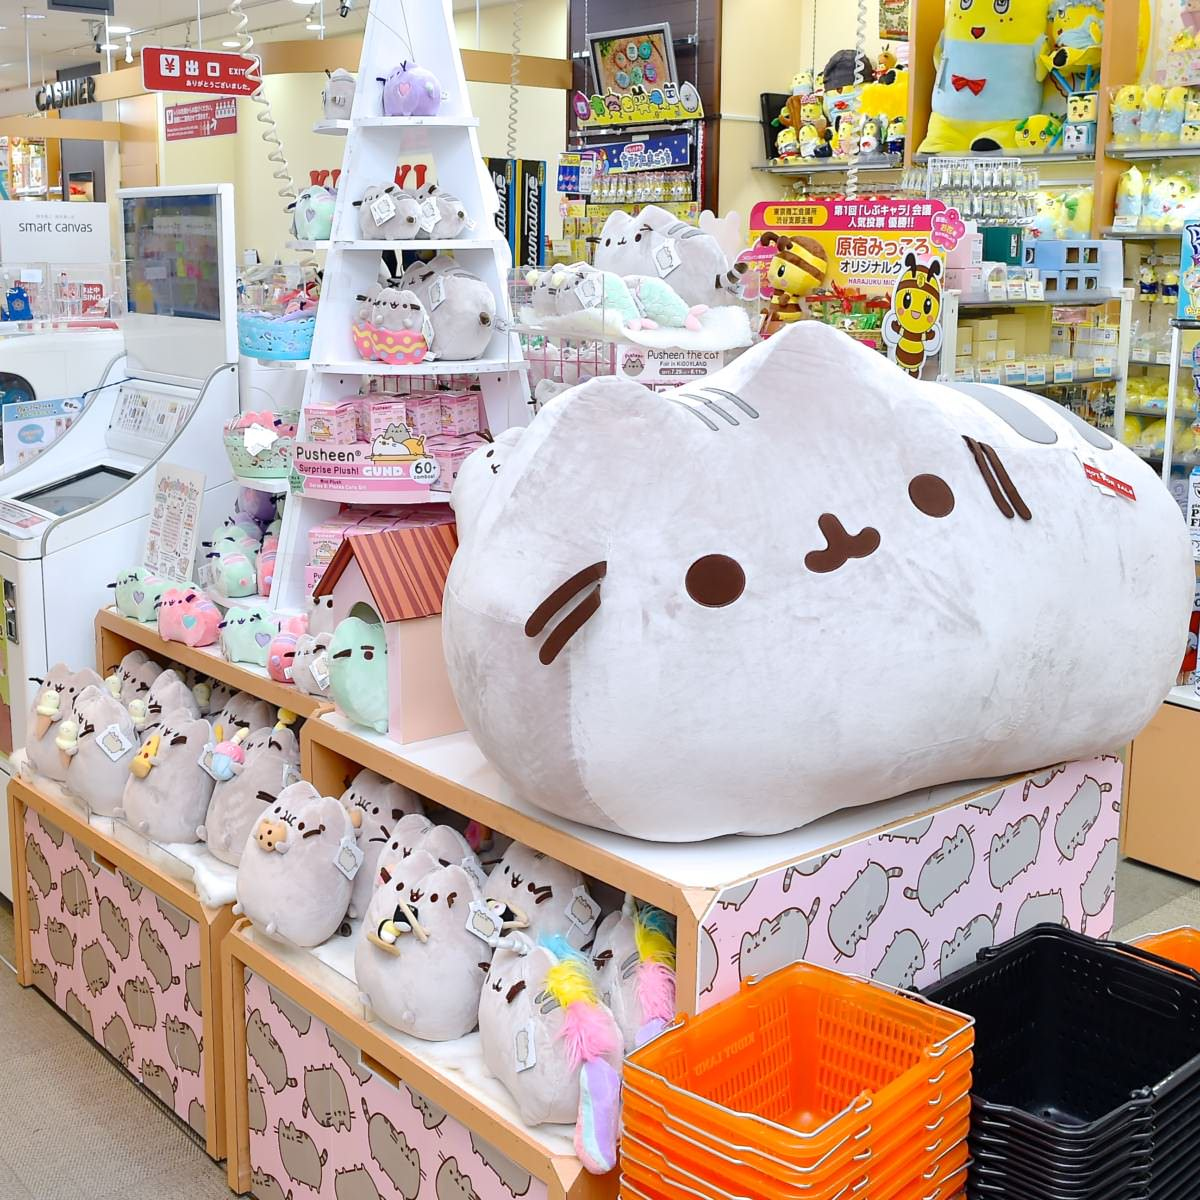 Pusheen(プシーン)グッズ